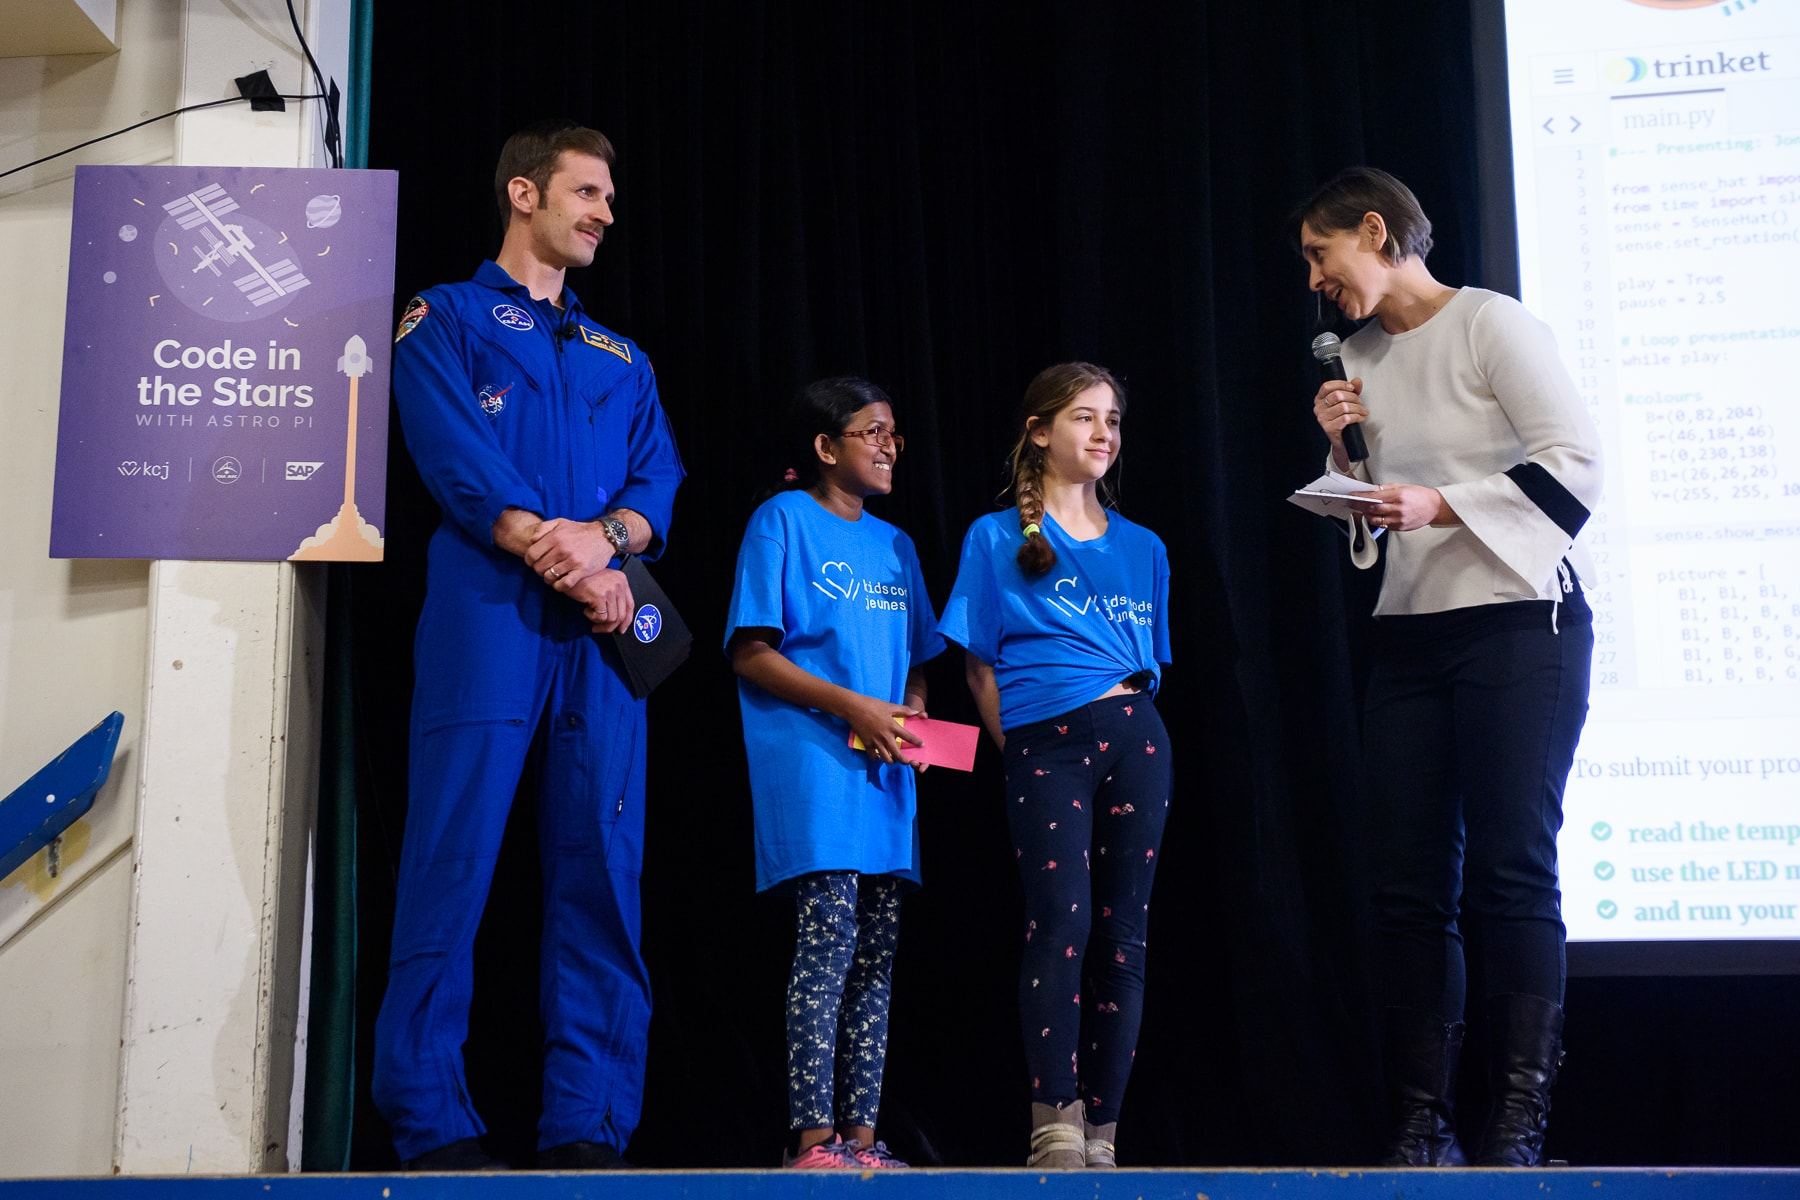 Kids asking their question to the astronaut on stage.